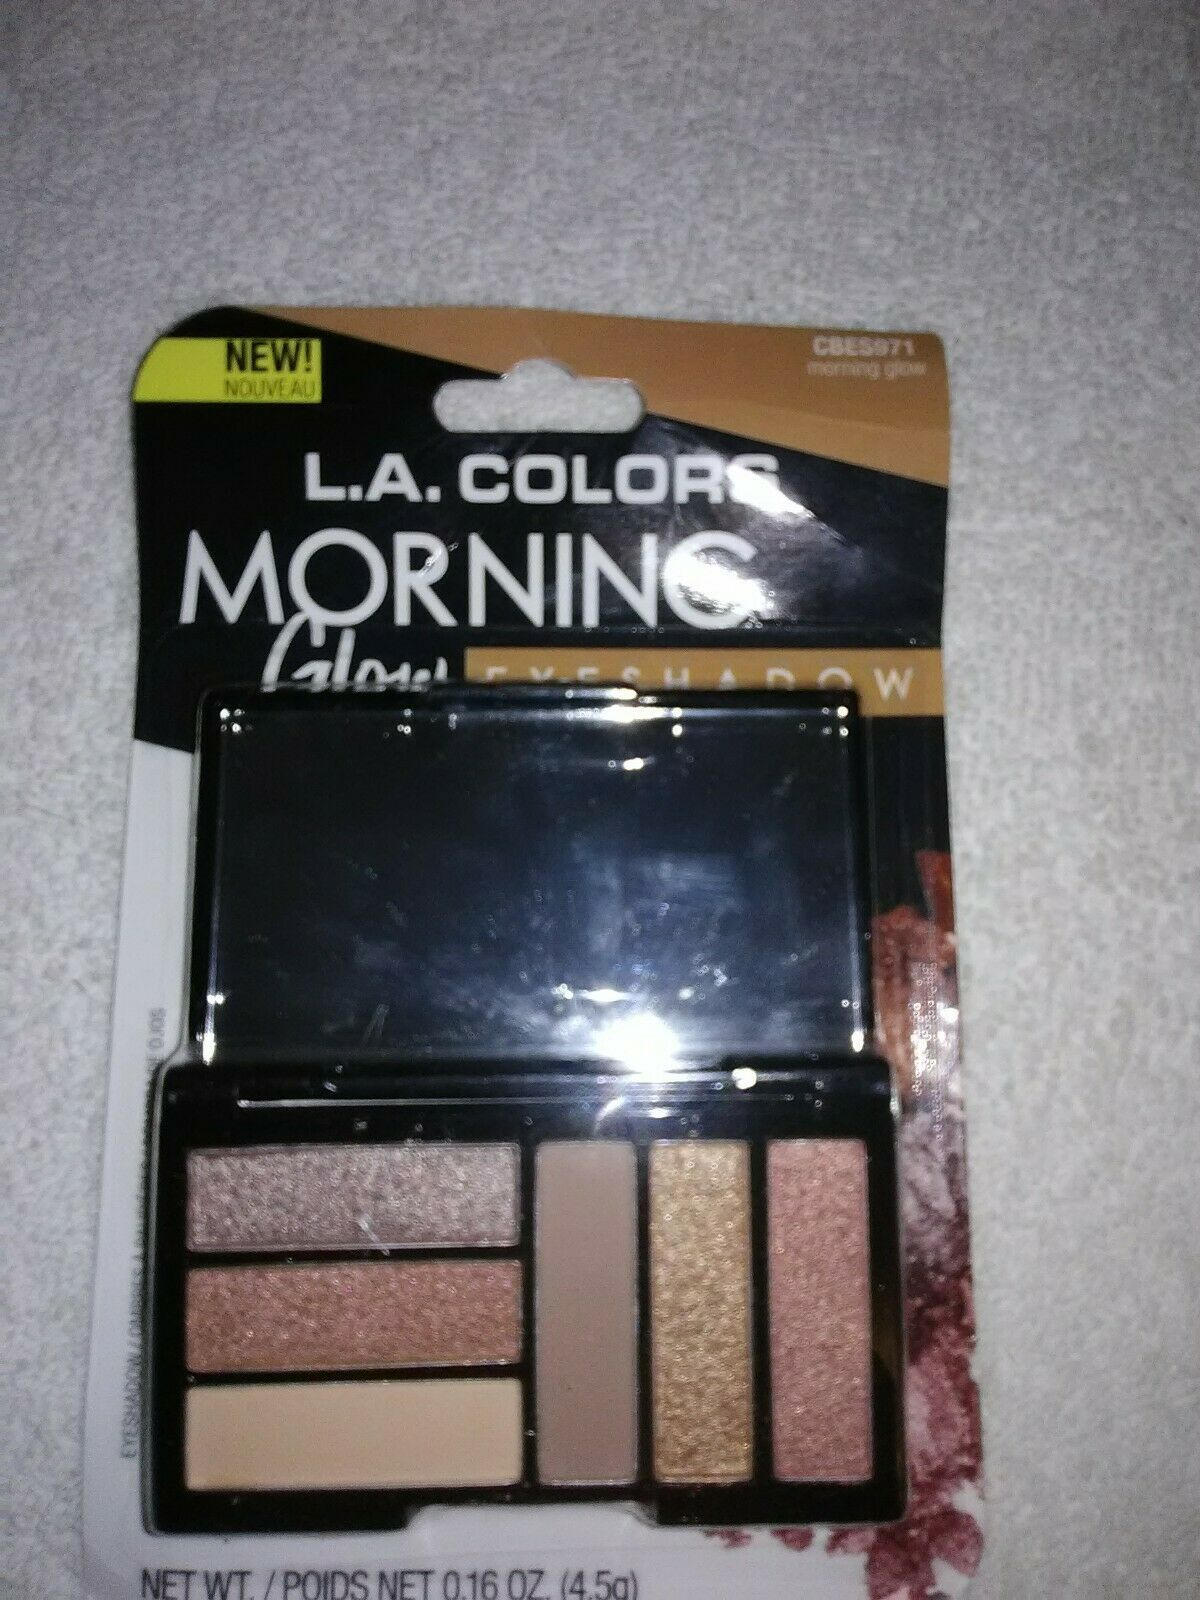 Primary image for L.A. Colors 6-Color Compact Eyeshadow Palette w/Mirror - *MORNING GLOW*